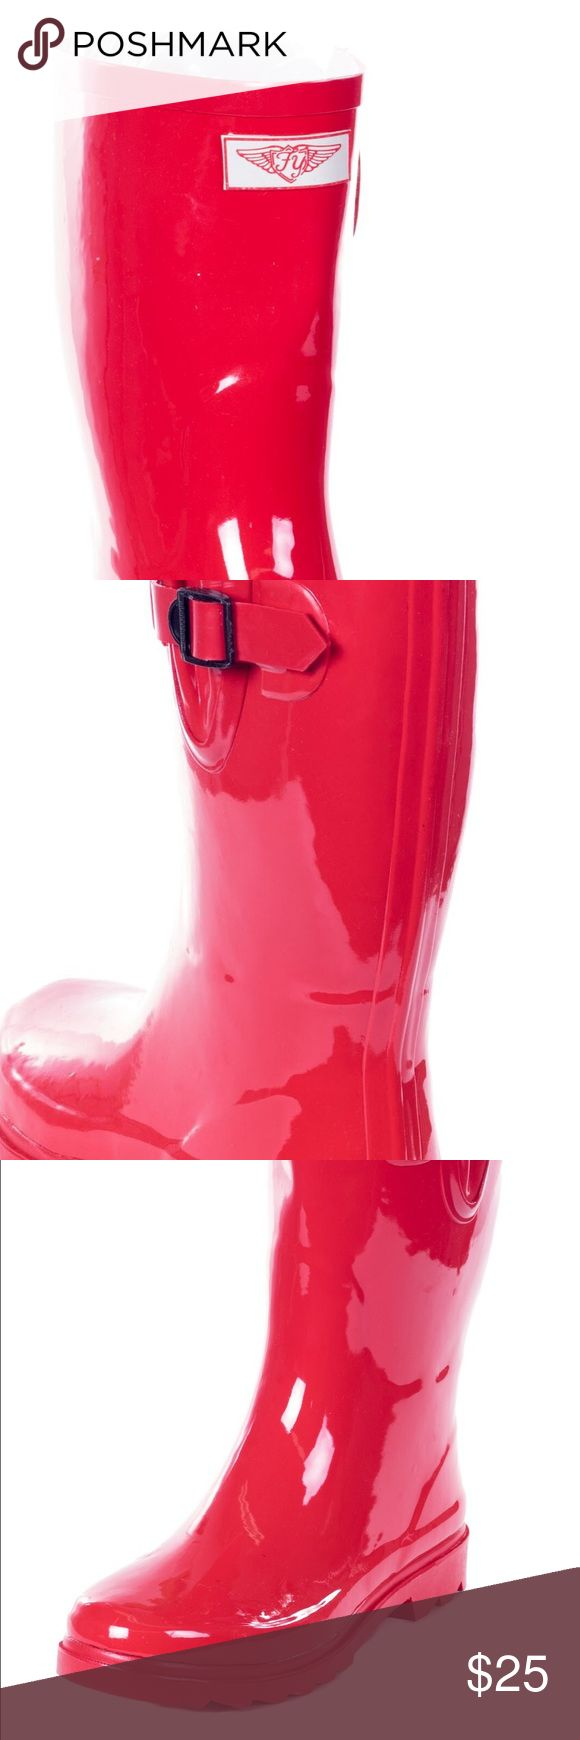 Fantastic On Your Feet Satra Women39s Rubber Rain Boot  Free Shipping On Orders